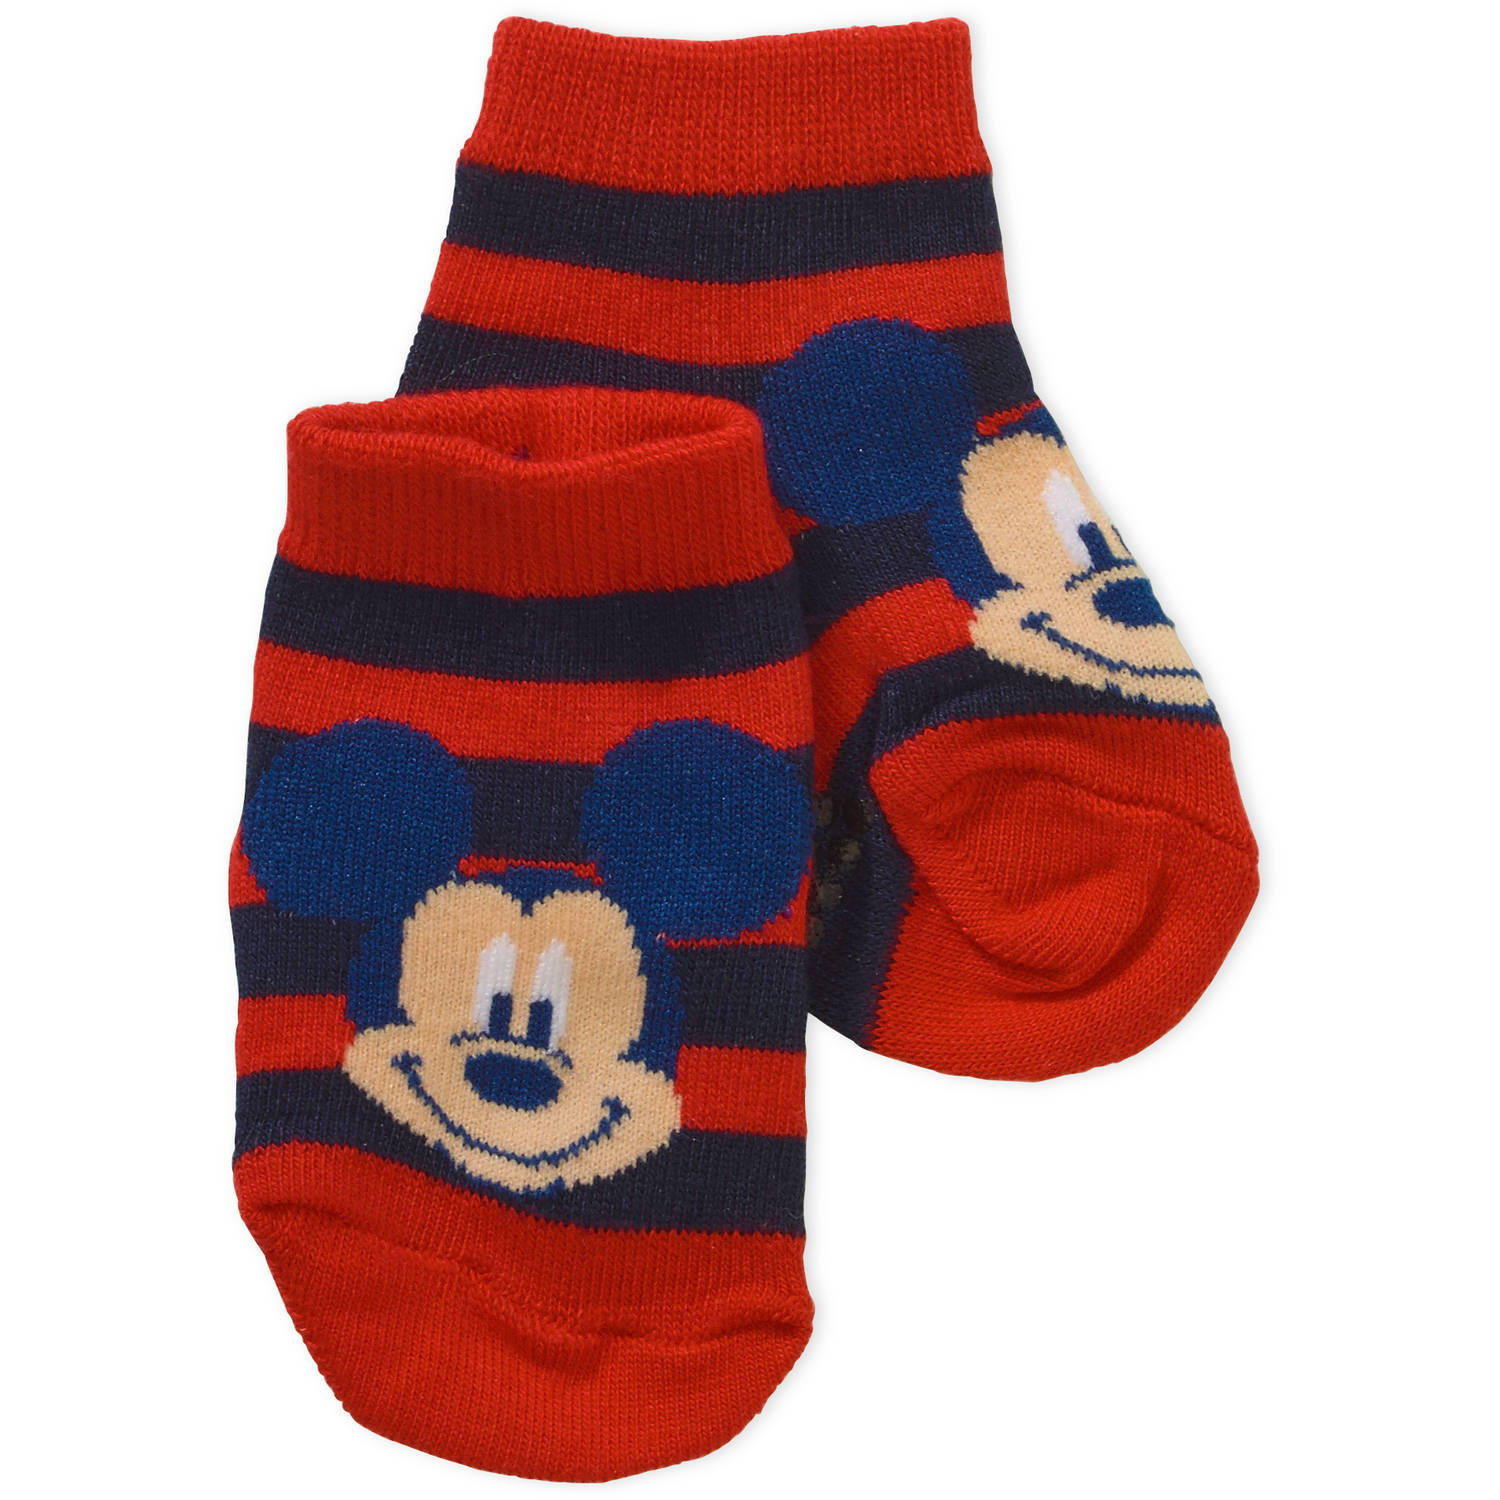 Clubhouse Mickey Mouse Newborn Baby Boy Quarter Socks, 3-Pack